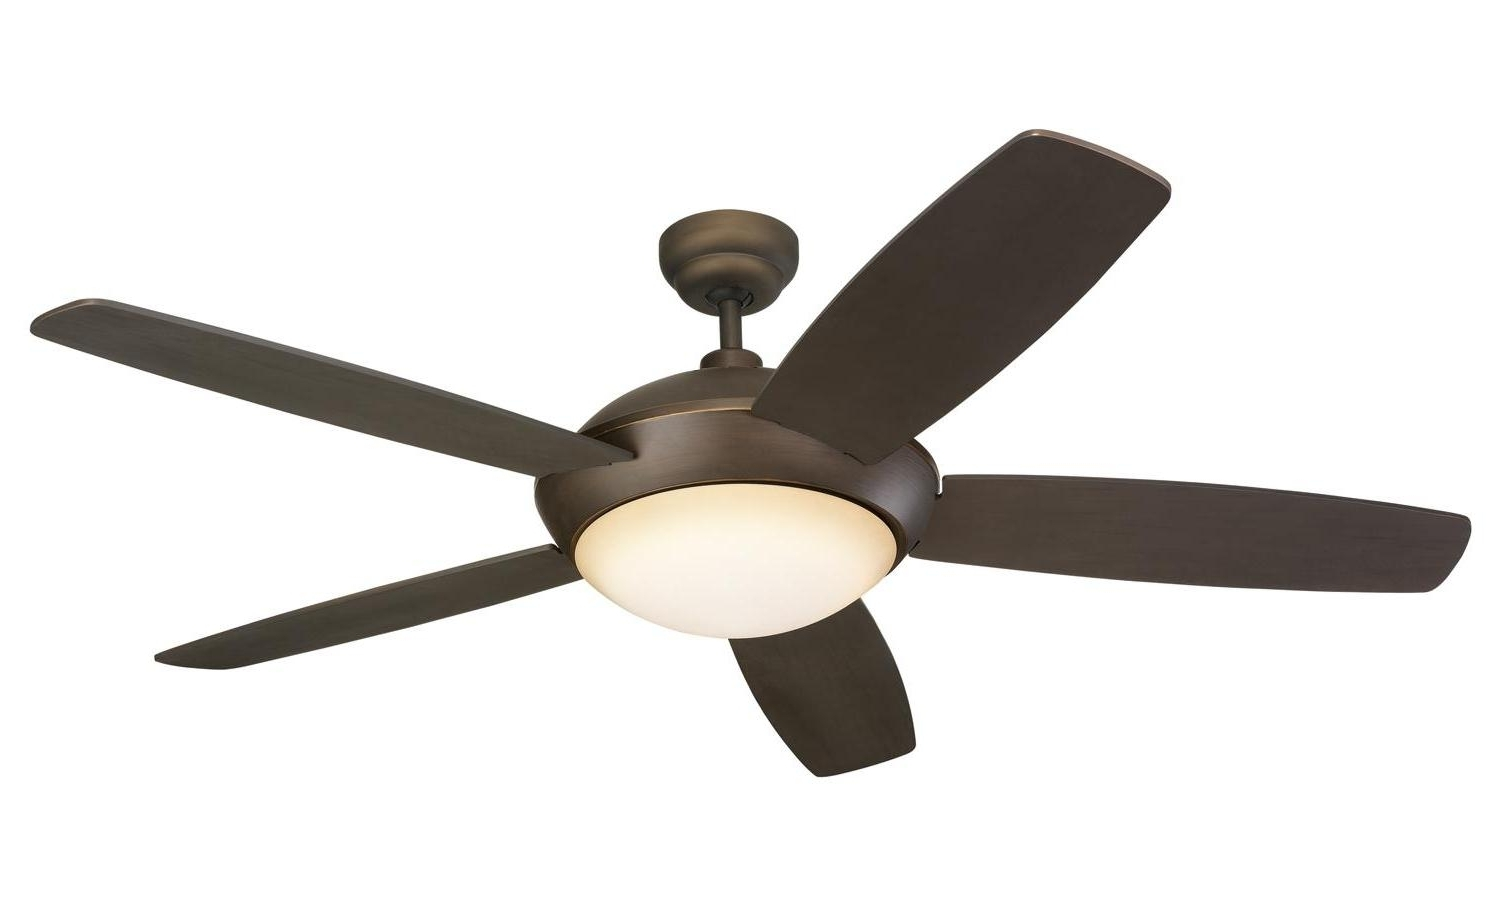 2018 Outdoor Ceiling Fans With Remote And Light Inside Functional Ceiling Fans With Lights And Remote (View 1 of 20)